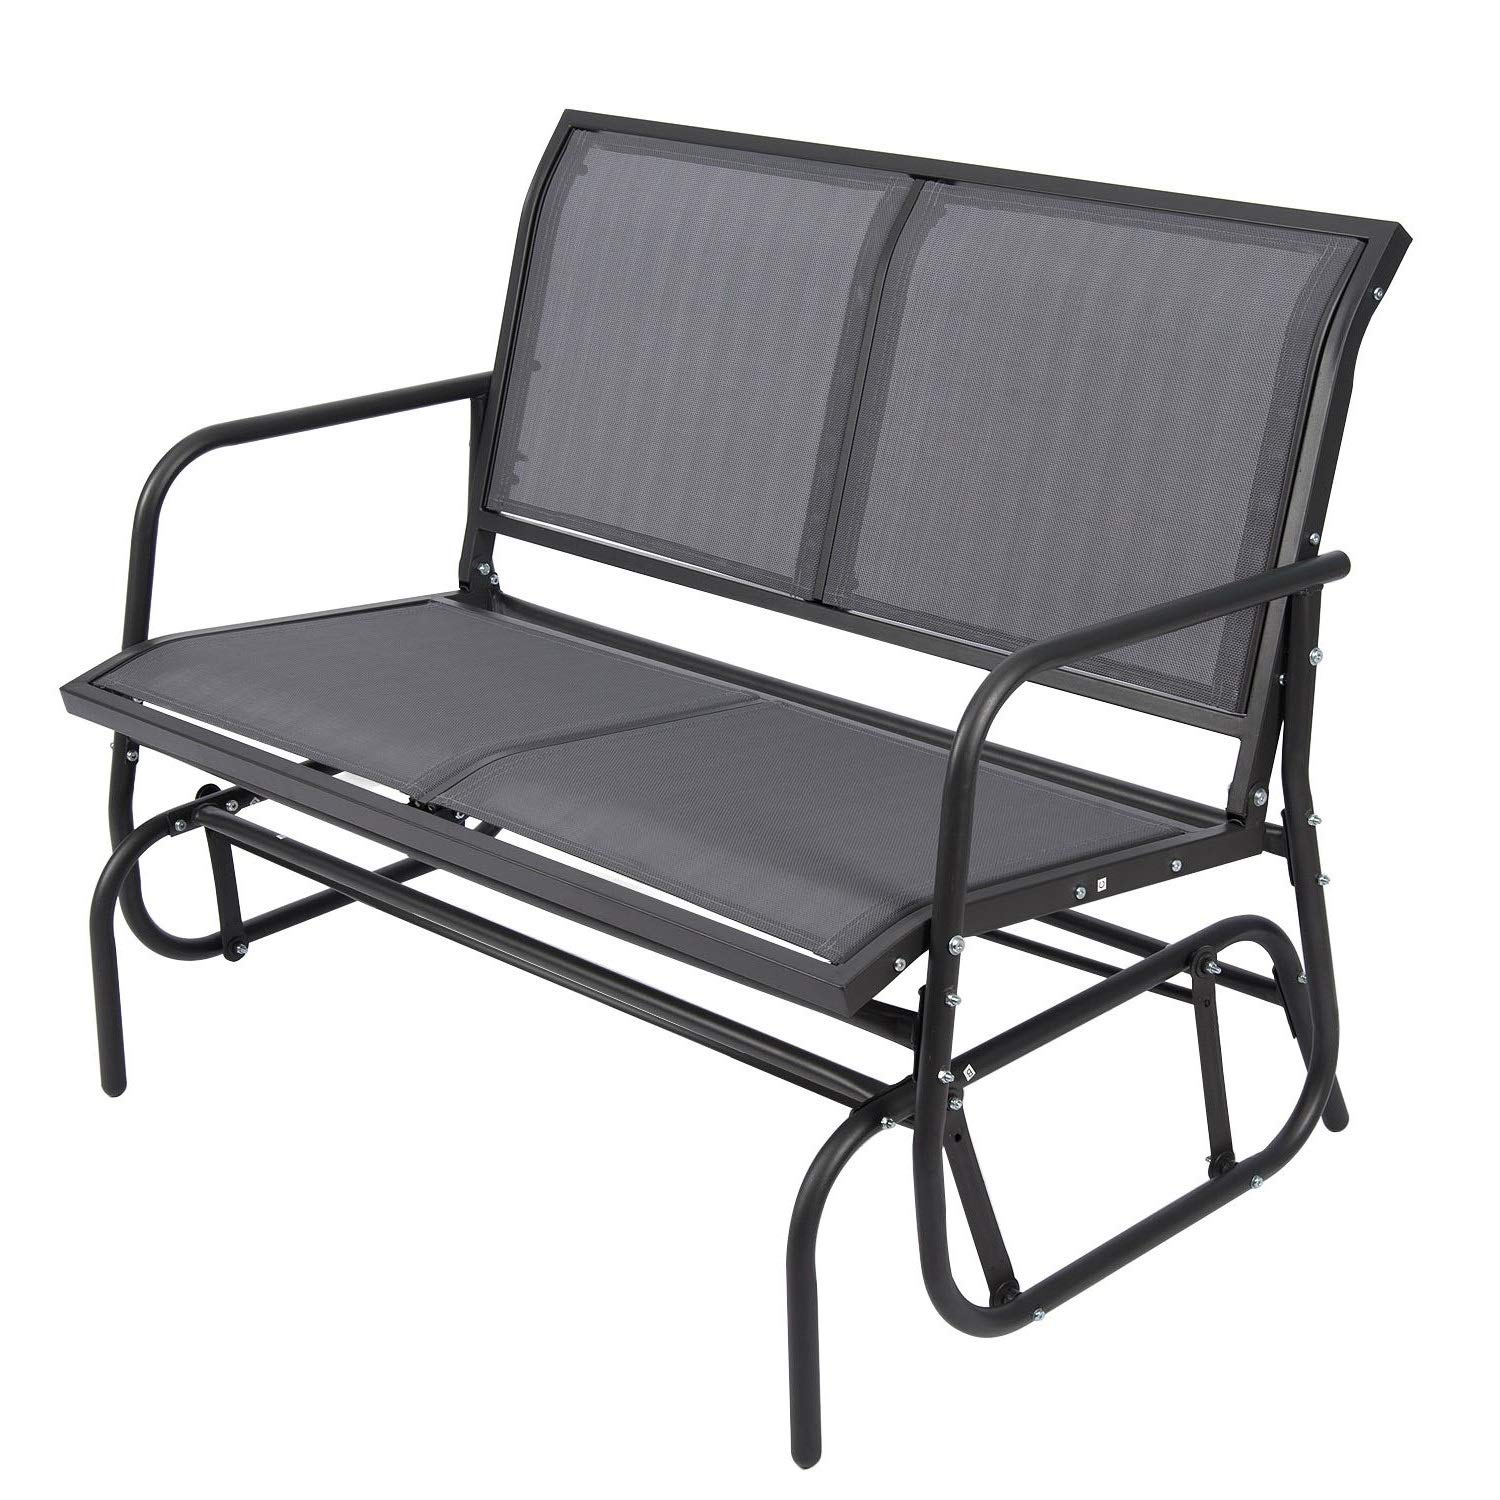 ELECWISH Outdoor Glider Chair for 2 Person, Patio Swing Garden Loveseat, Rocking Seating Textilene & Stable Steel Frame (Dark Grey) by ELECWISH